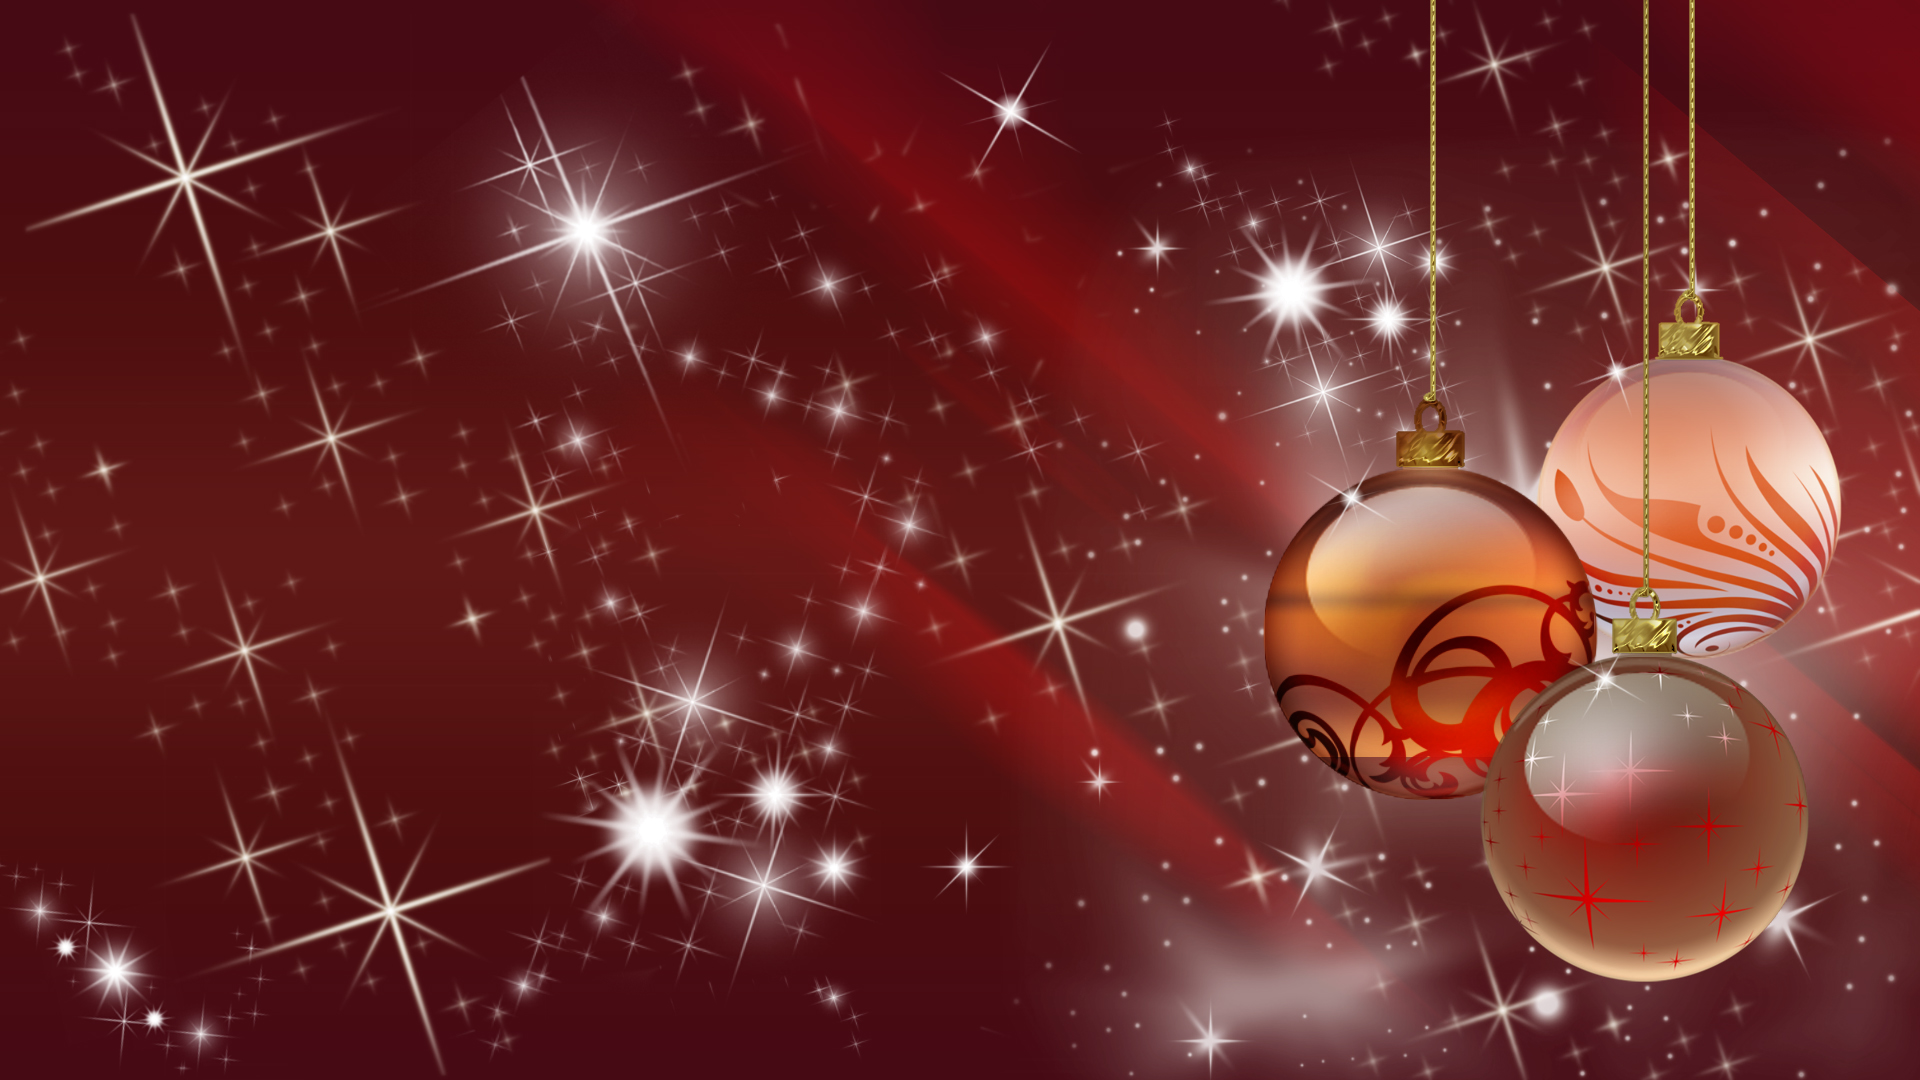 Free Christmas Wallpaper Background